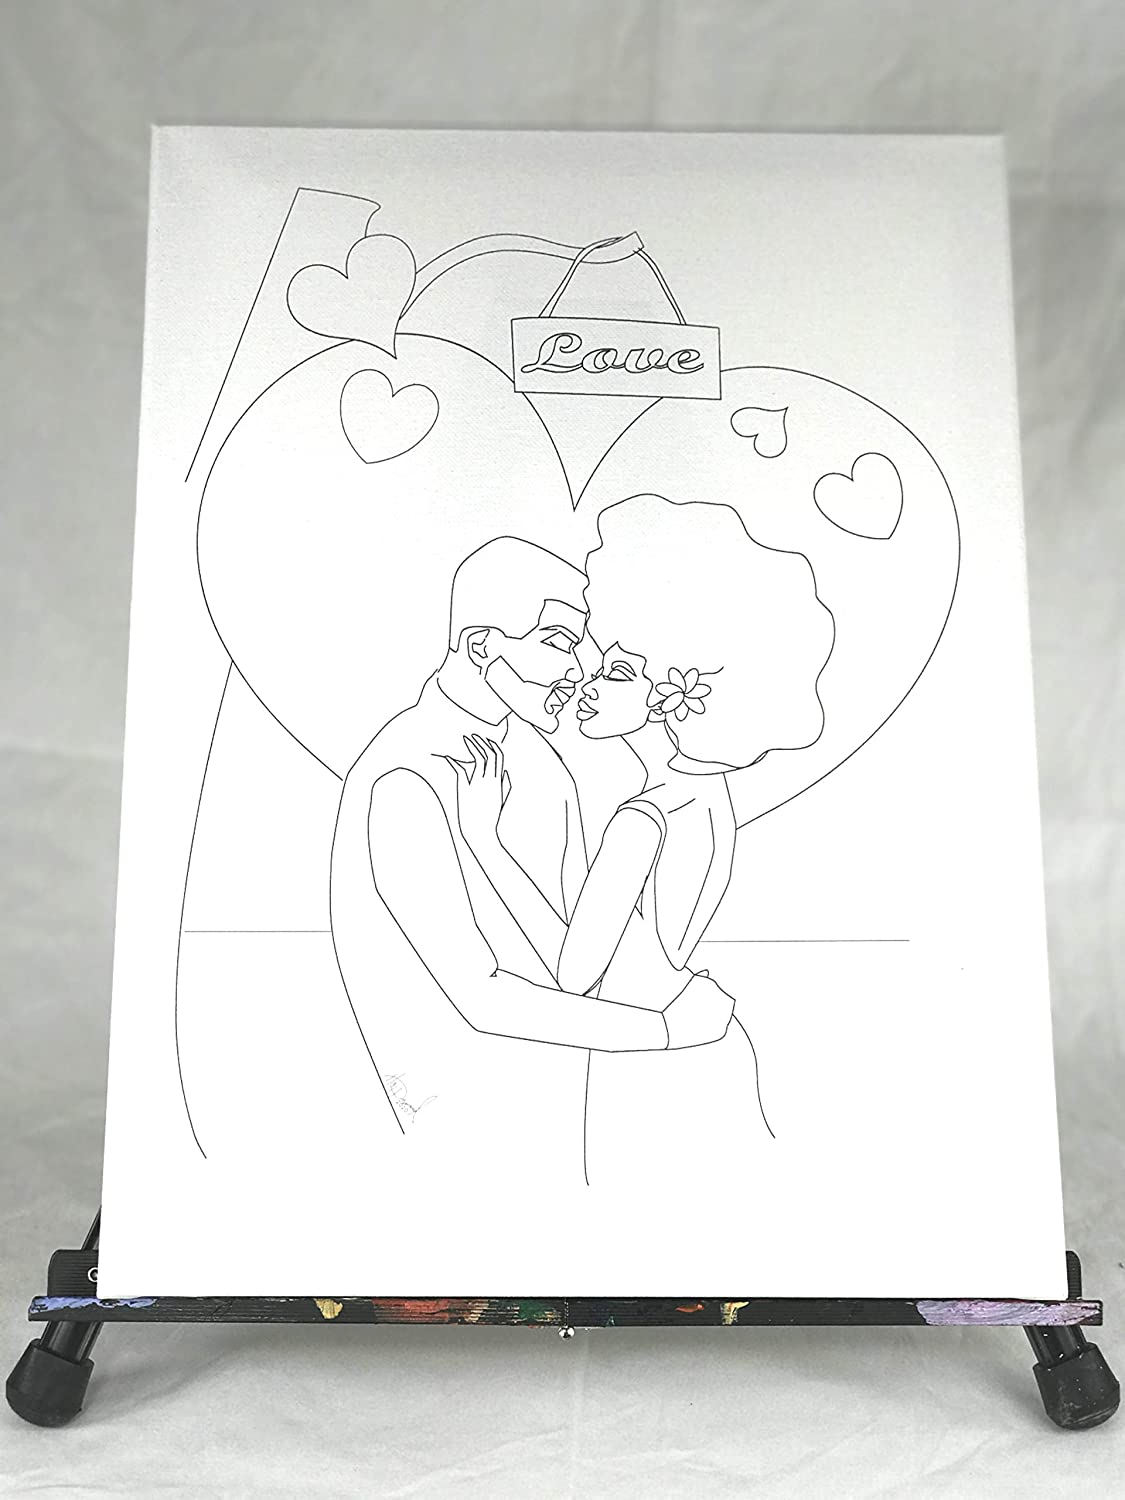 Black Couple in Love - Ready to Paint DIY Predrawn Canvas